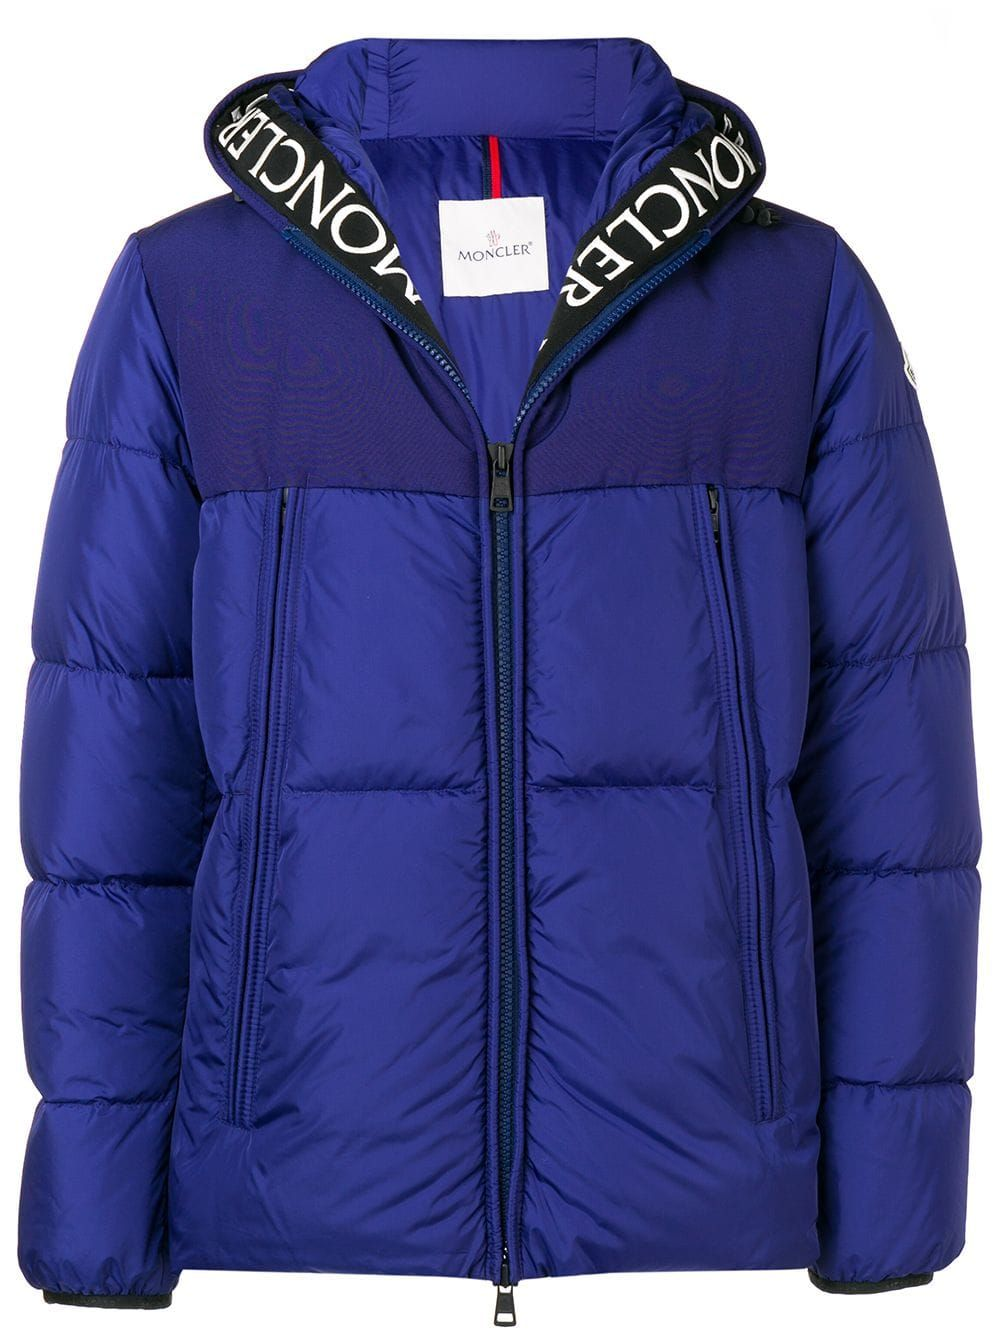 2eff7a455 Moncler Montclar Padded Jacket in 2019 | Products | Padded jacket ...